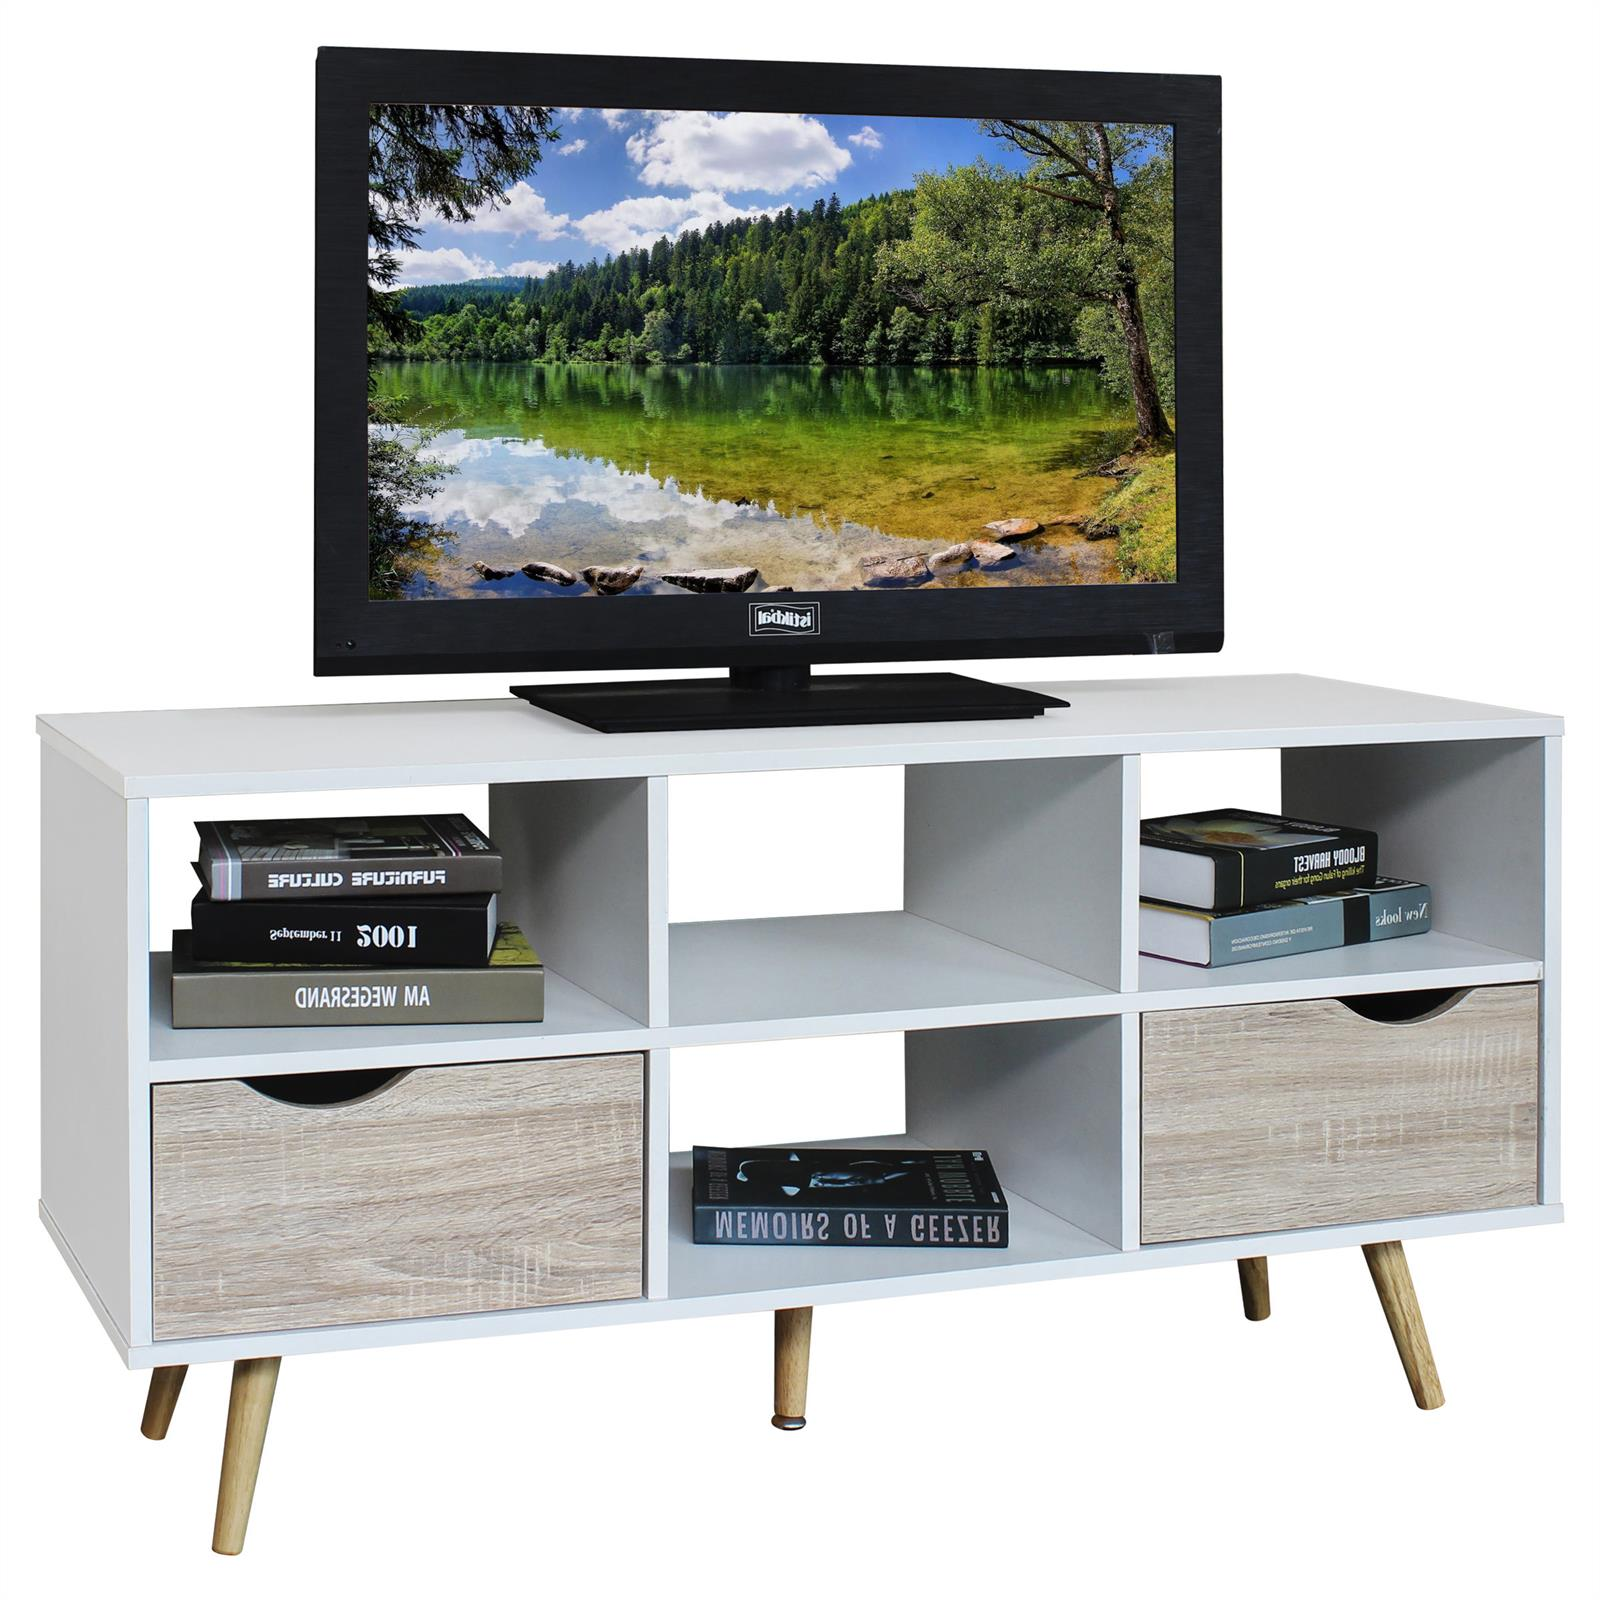 Tv Lowboard Nantes In Wei Sonoma Eiche Mobilia24 # Meuble Tv Nantes